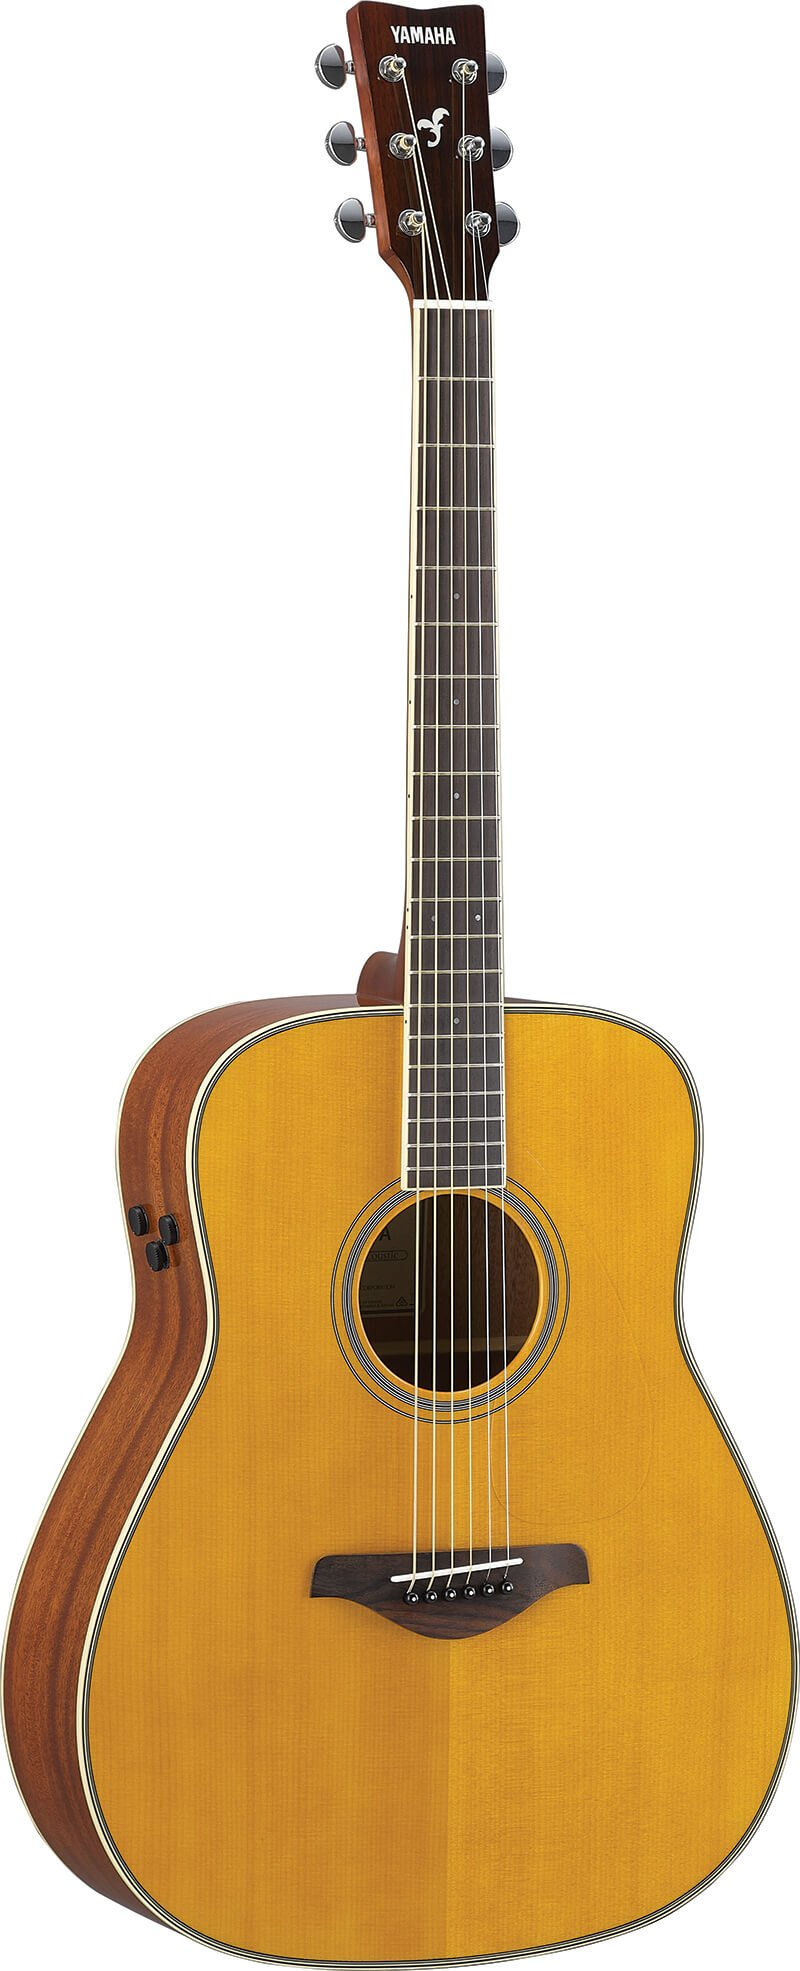 Yamaha FG-TA TransAcoustic Dreadnought Review | Performer Mag